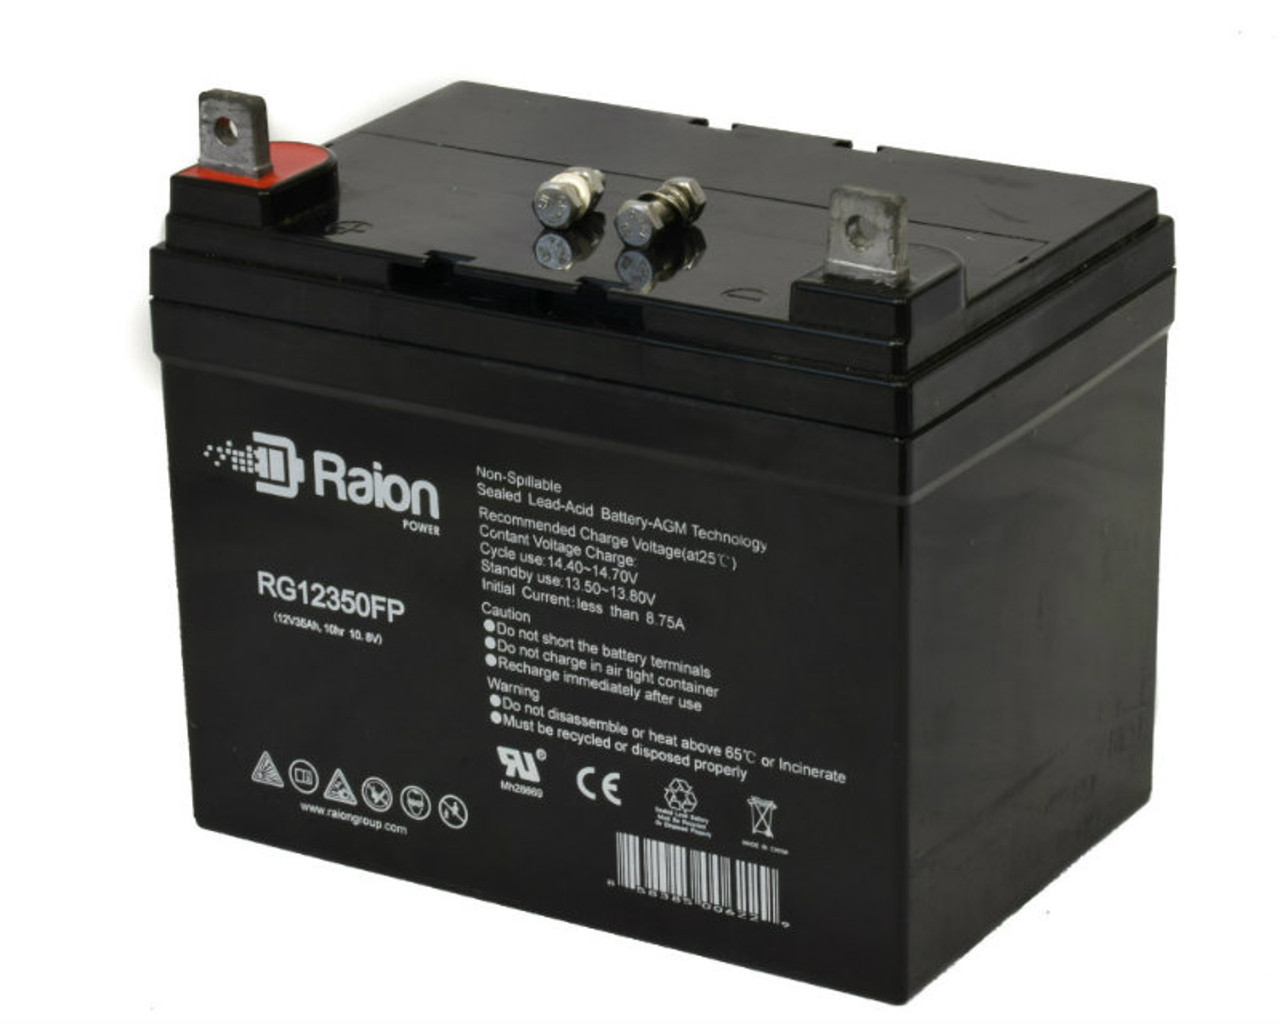 Raion Power RG12350FP Replacement Wheelchair Battery For Pride Jet 3 (1 Pack)